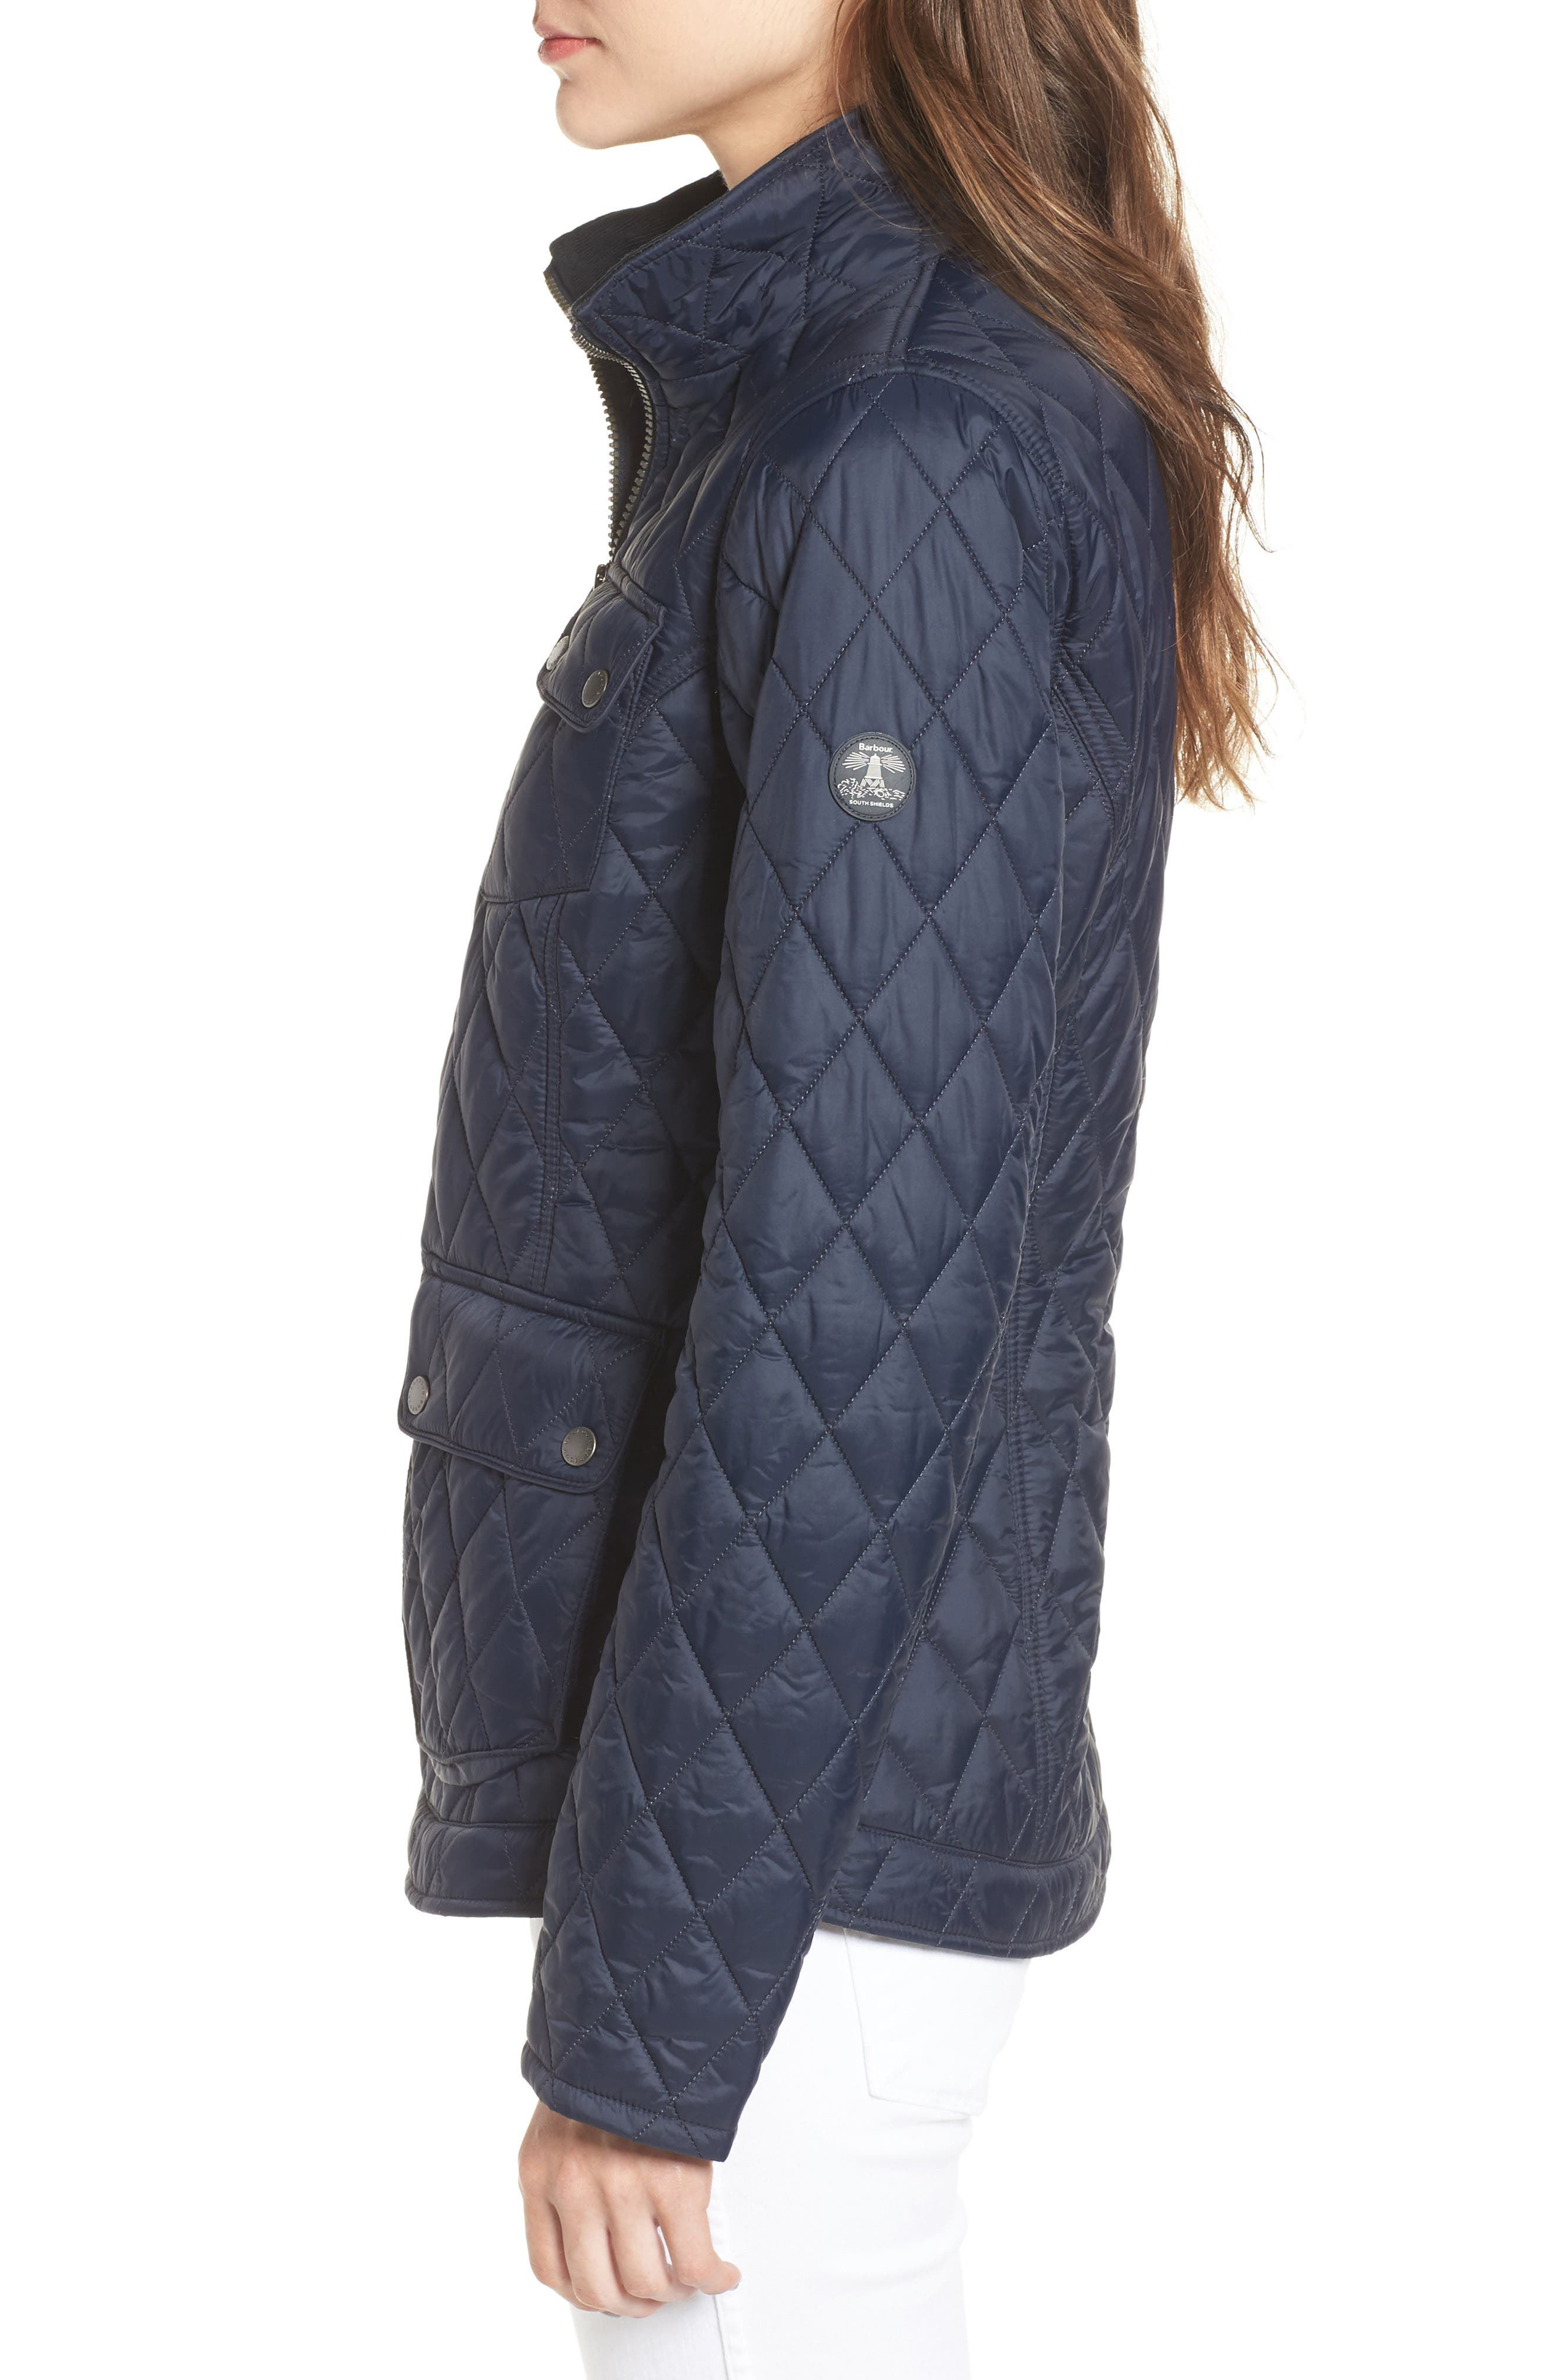 Dolostone Quilted Jacket,                             Alternate thumbnail 3, color,                             Dark Navy